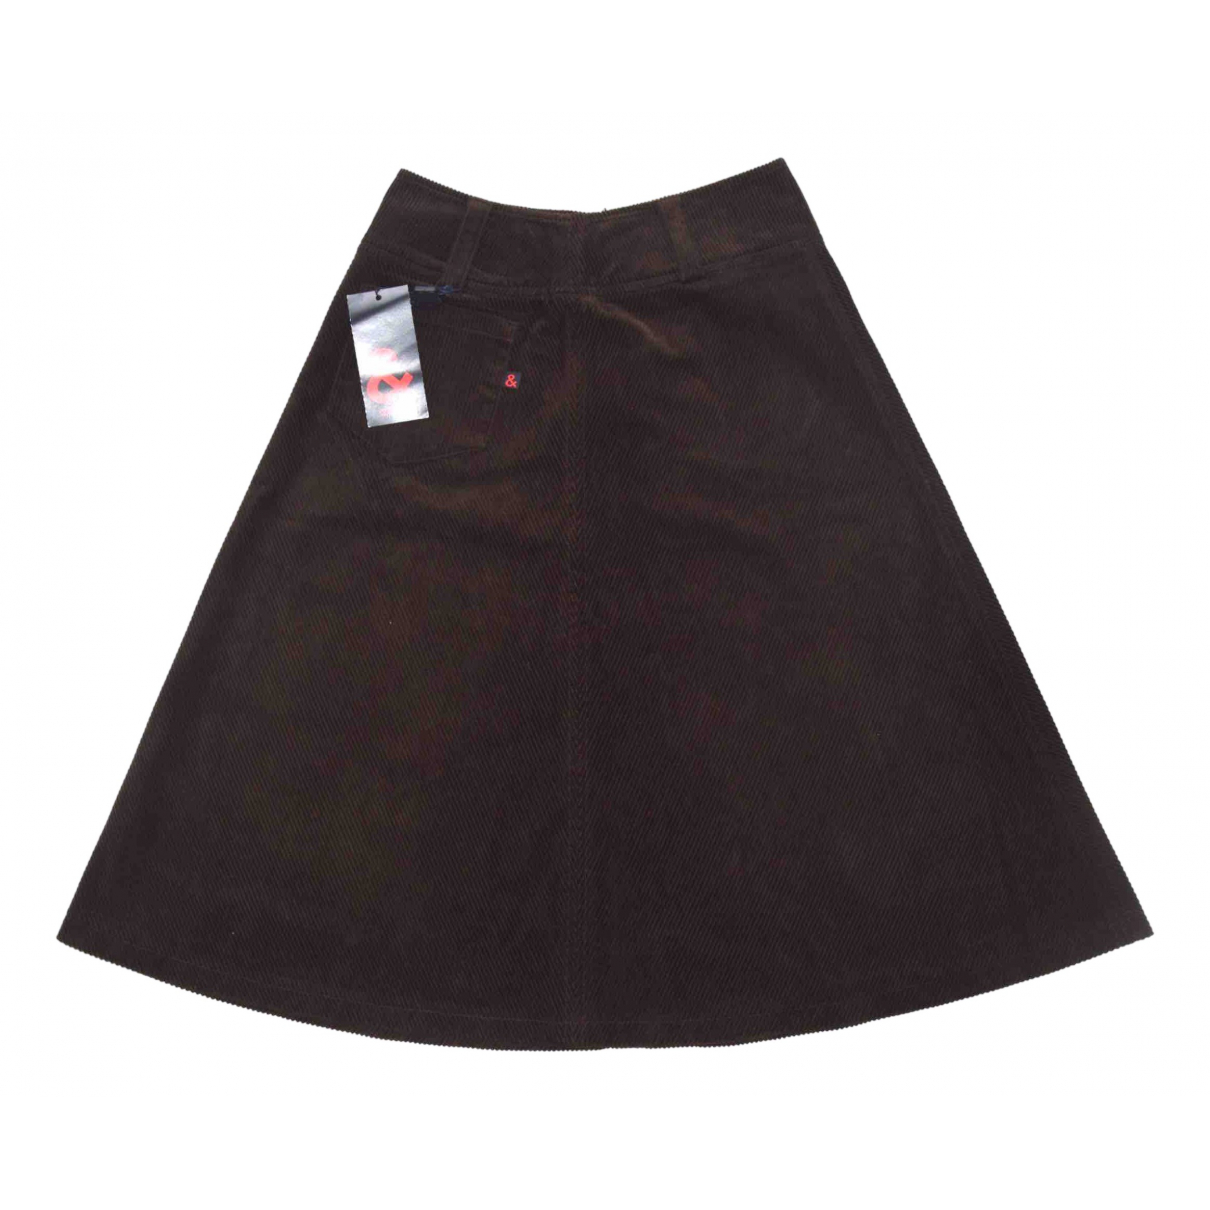 D&g N Brown Cotton skirt for Women 38 IT